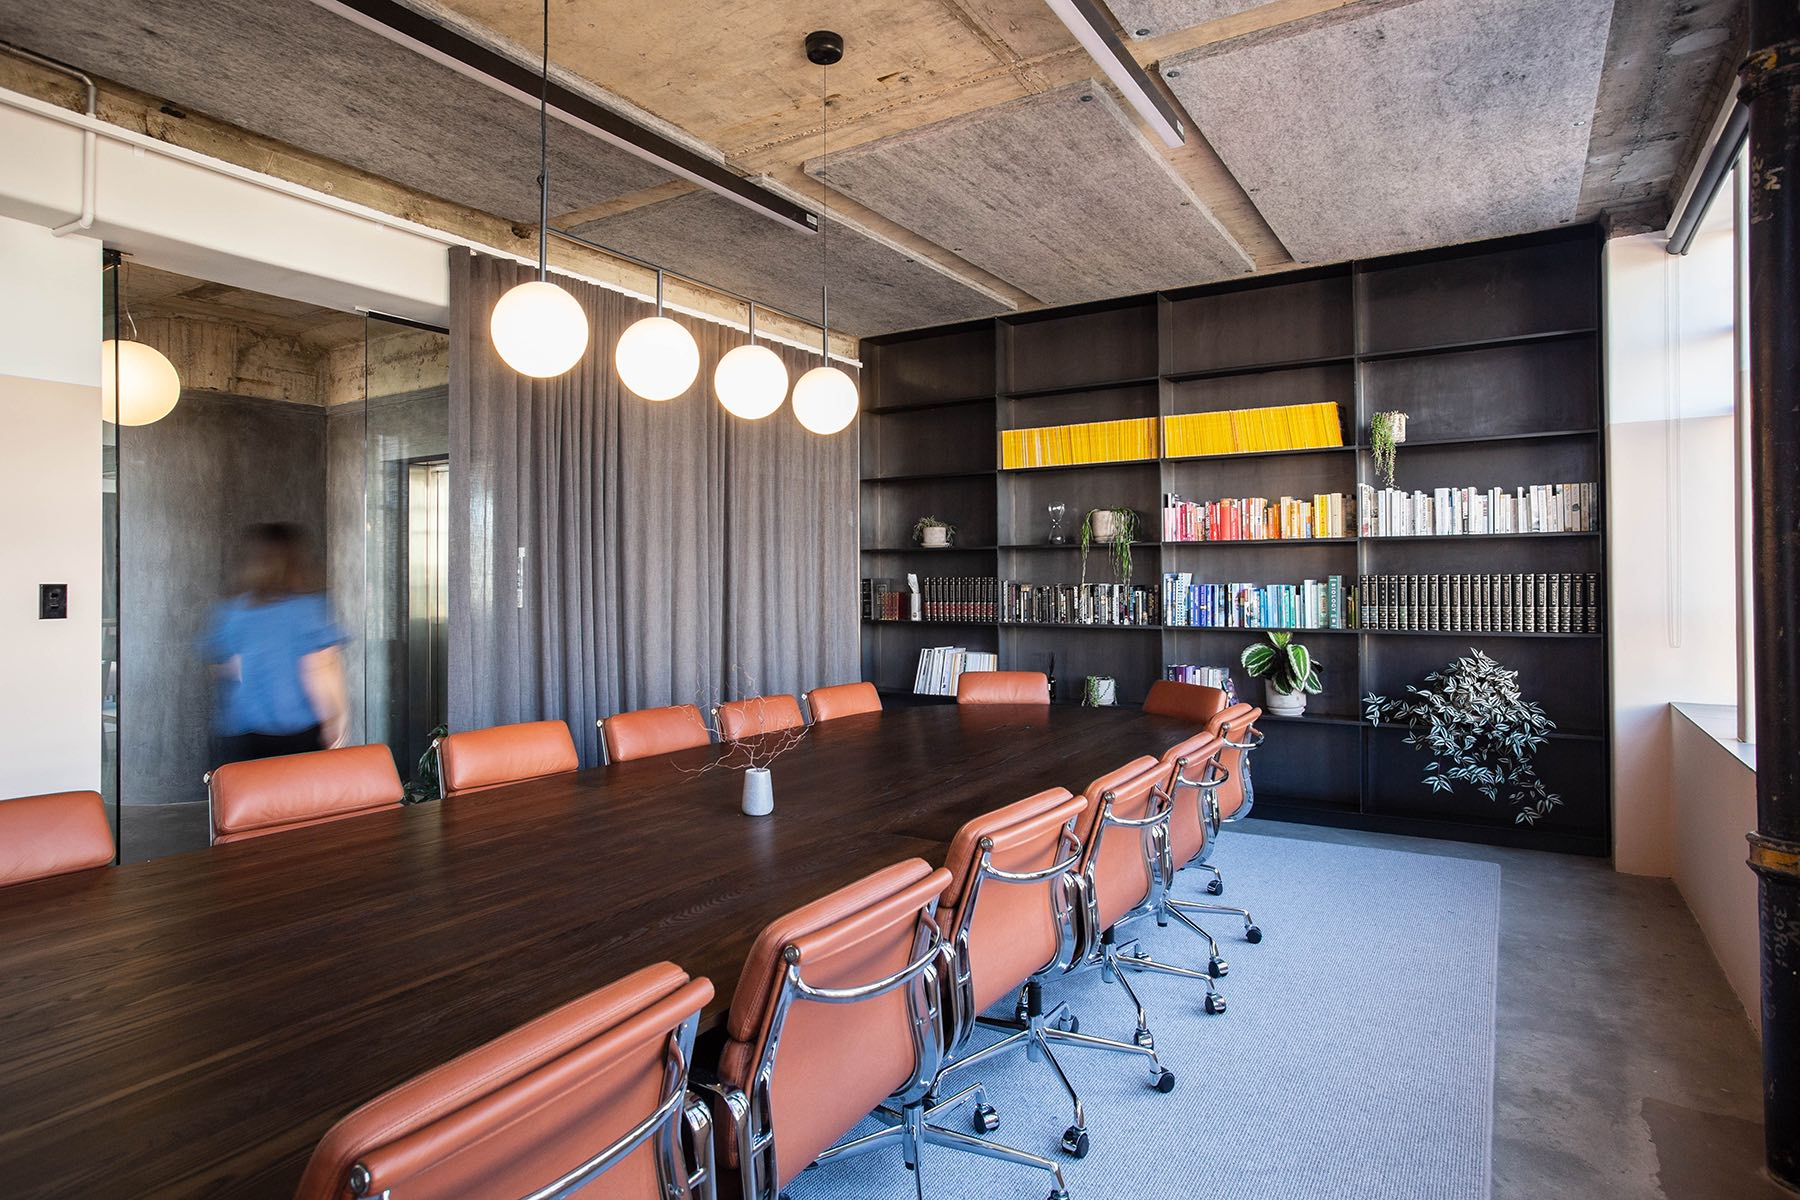 A Look Inside Panama Square's Hamilton Coworking Space